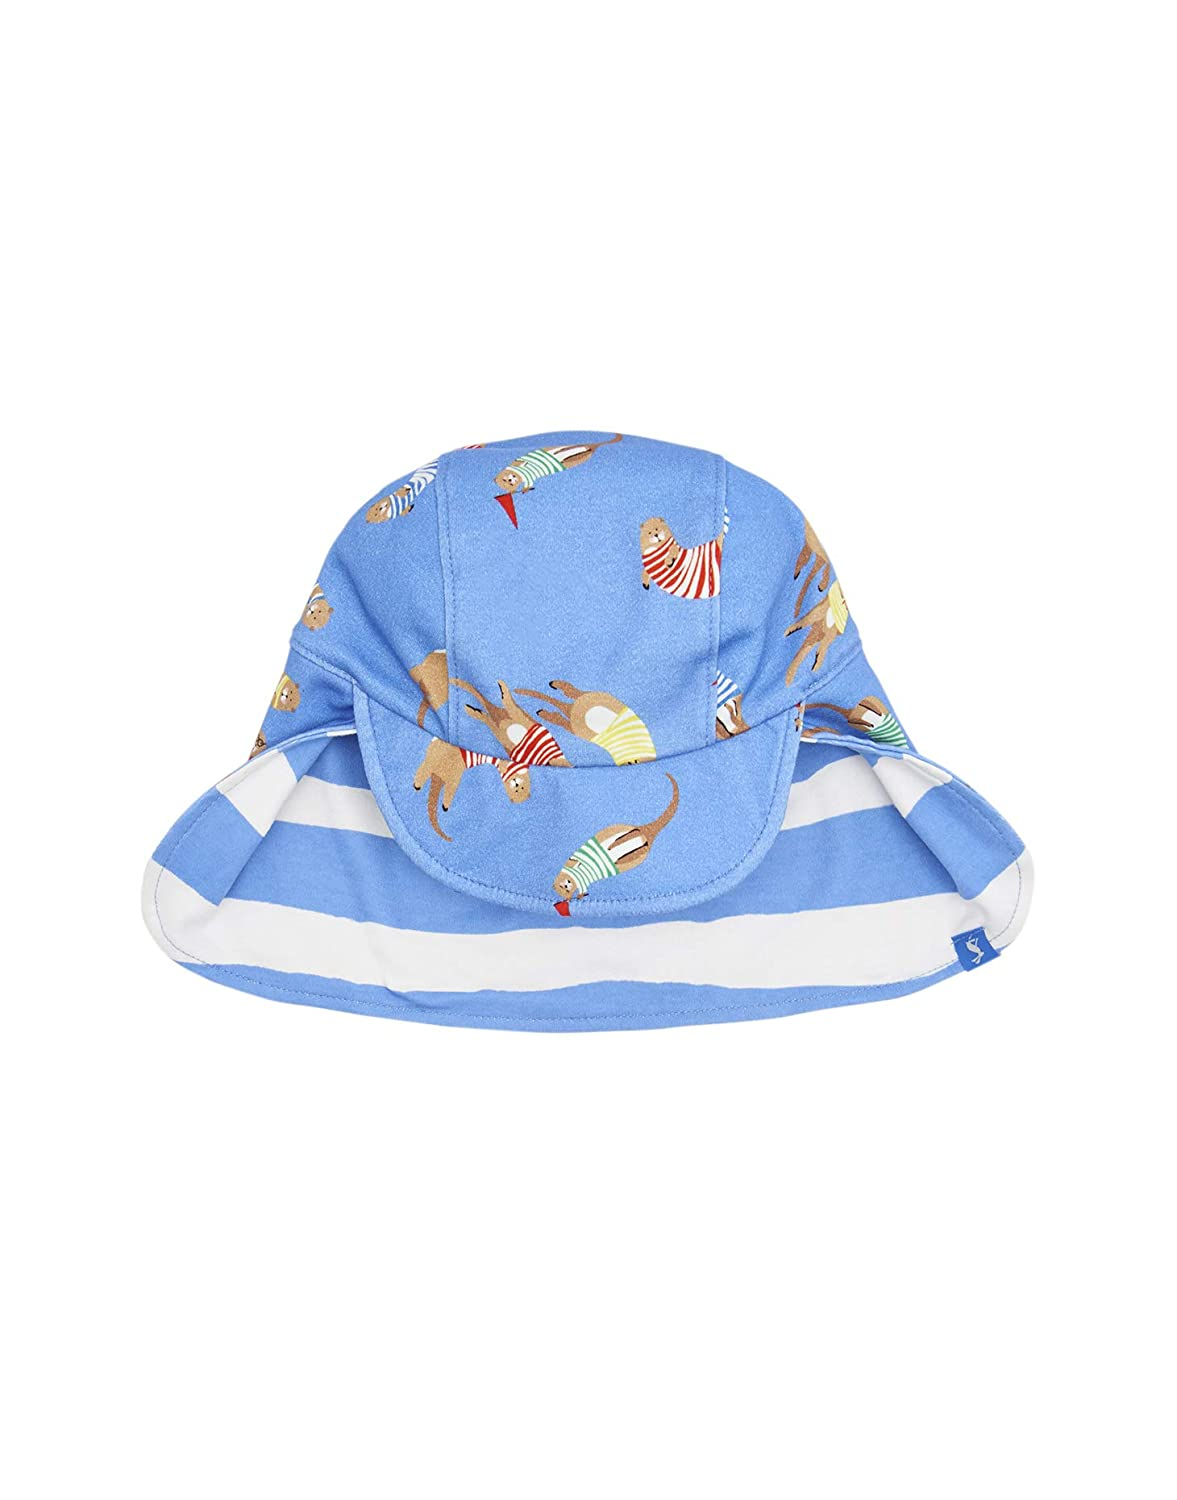 Joules Baby BRIT Reversible Sun Hat Sea Dog Stripe